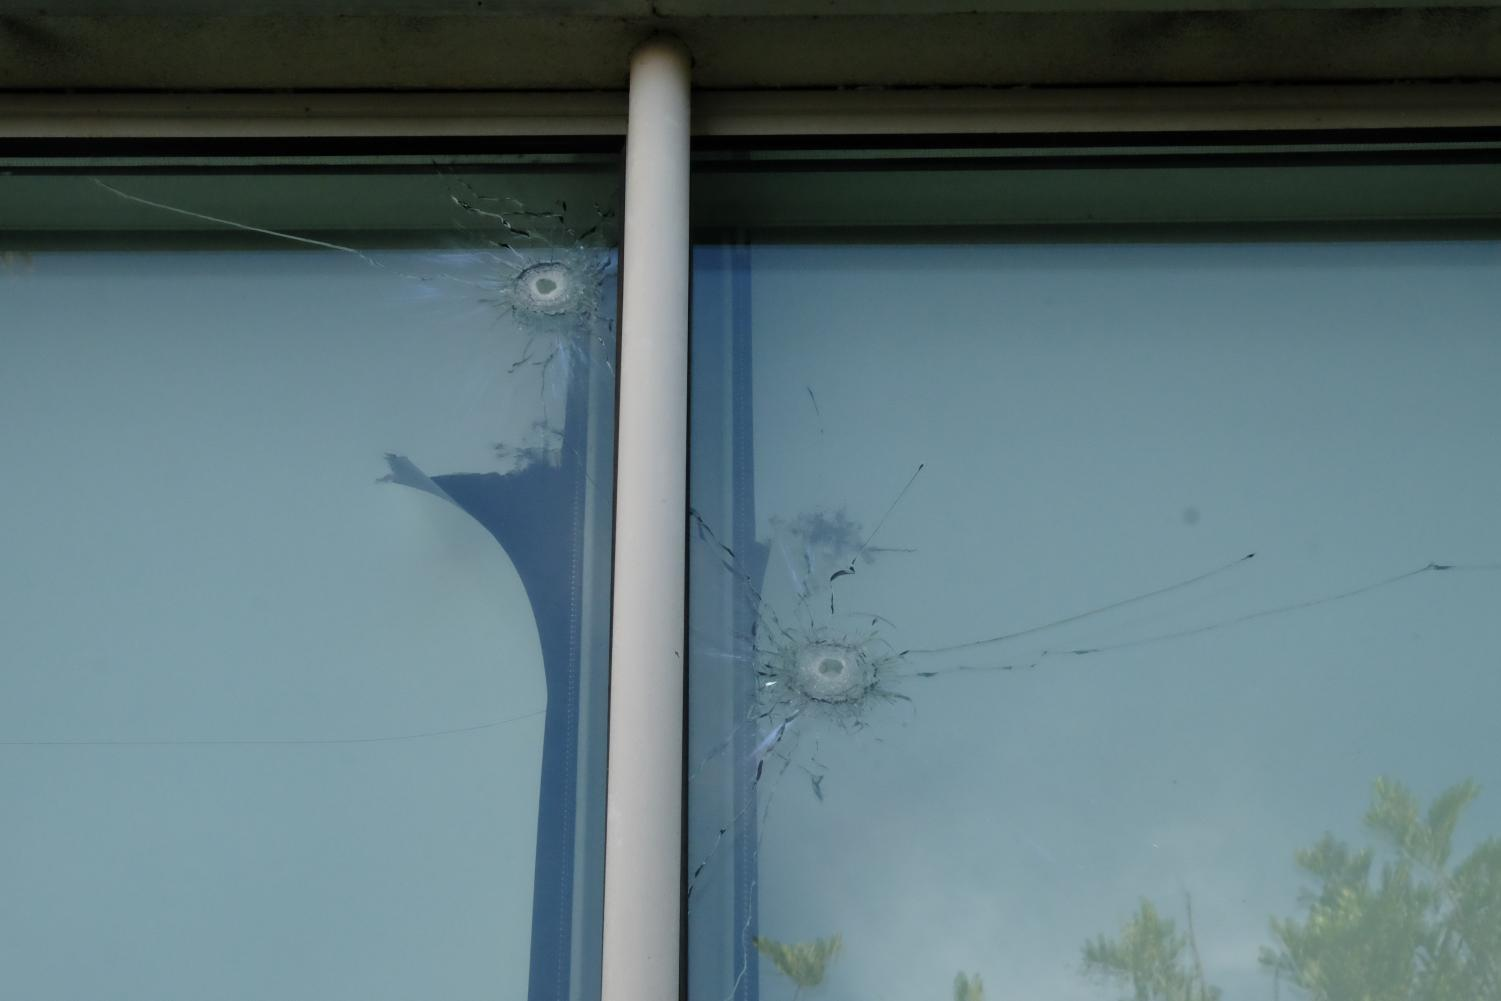 Bullet holes partially shatter windows in Life Sciences Room 105